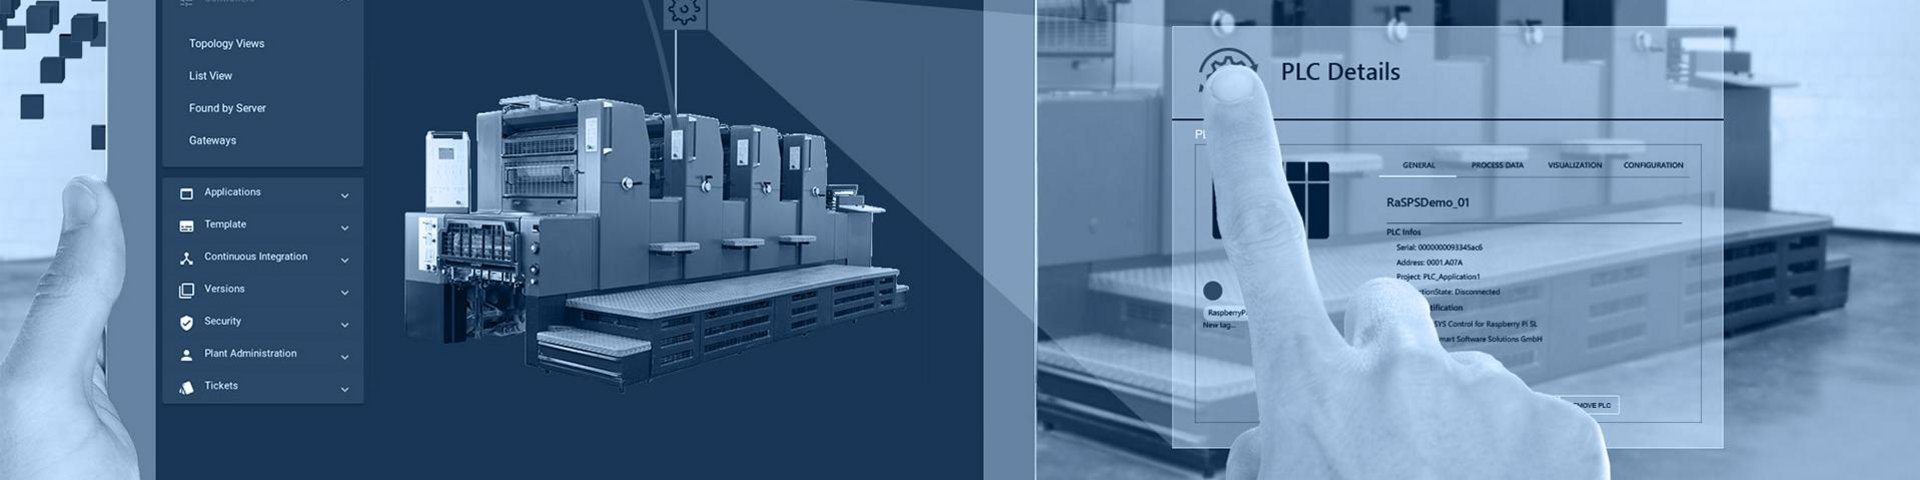 CODESYS Engineering for industrial automation - CODESYS